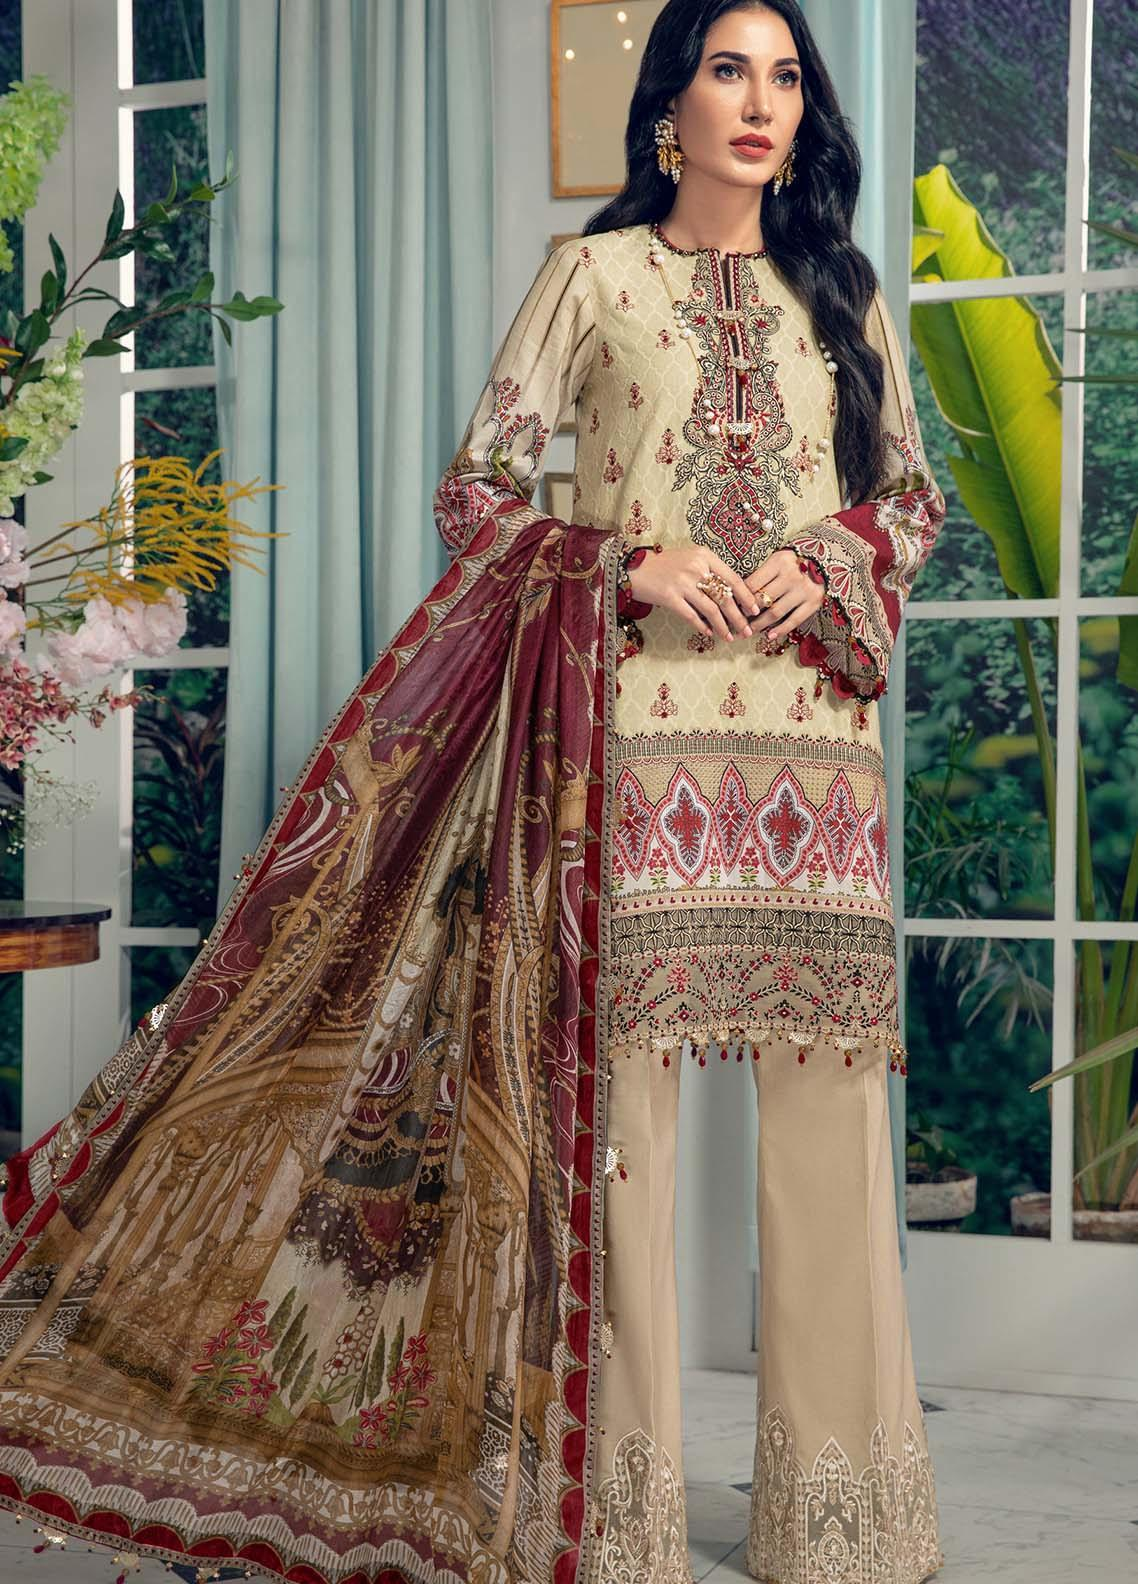 Anaya By Kiran Chaudhry Embroidered Jacquard Suits Unstitched 3 Piece AK21LL AL21-06-B ADRIANA - Summer Collection